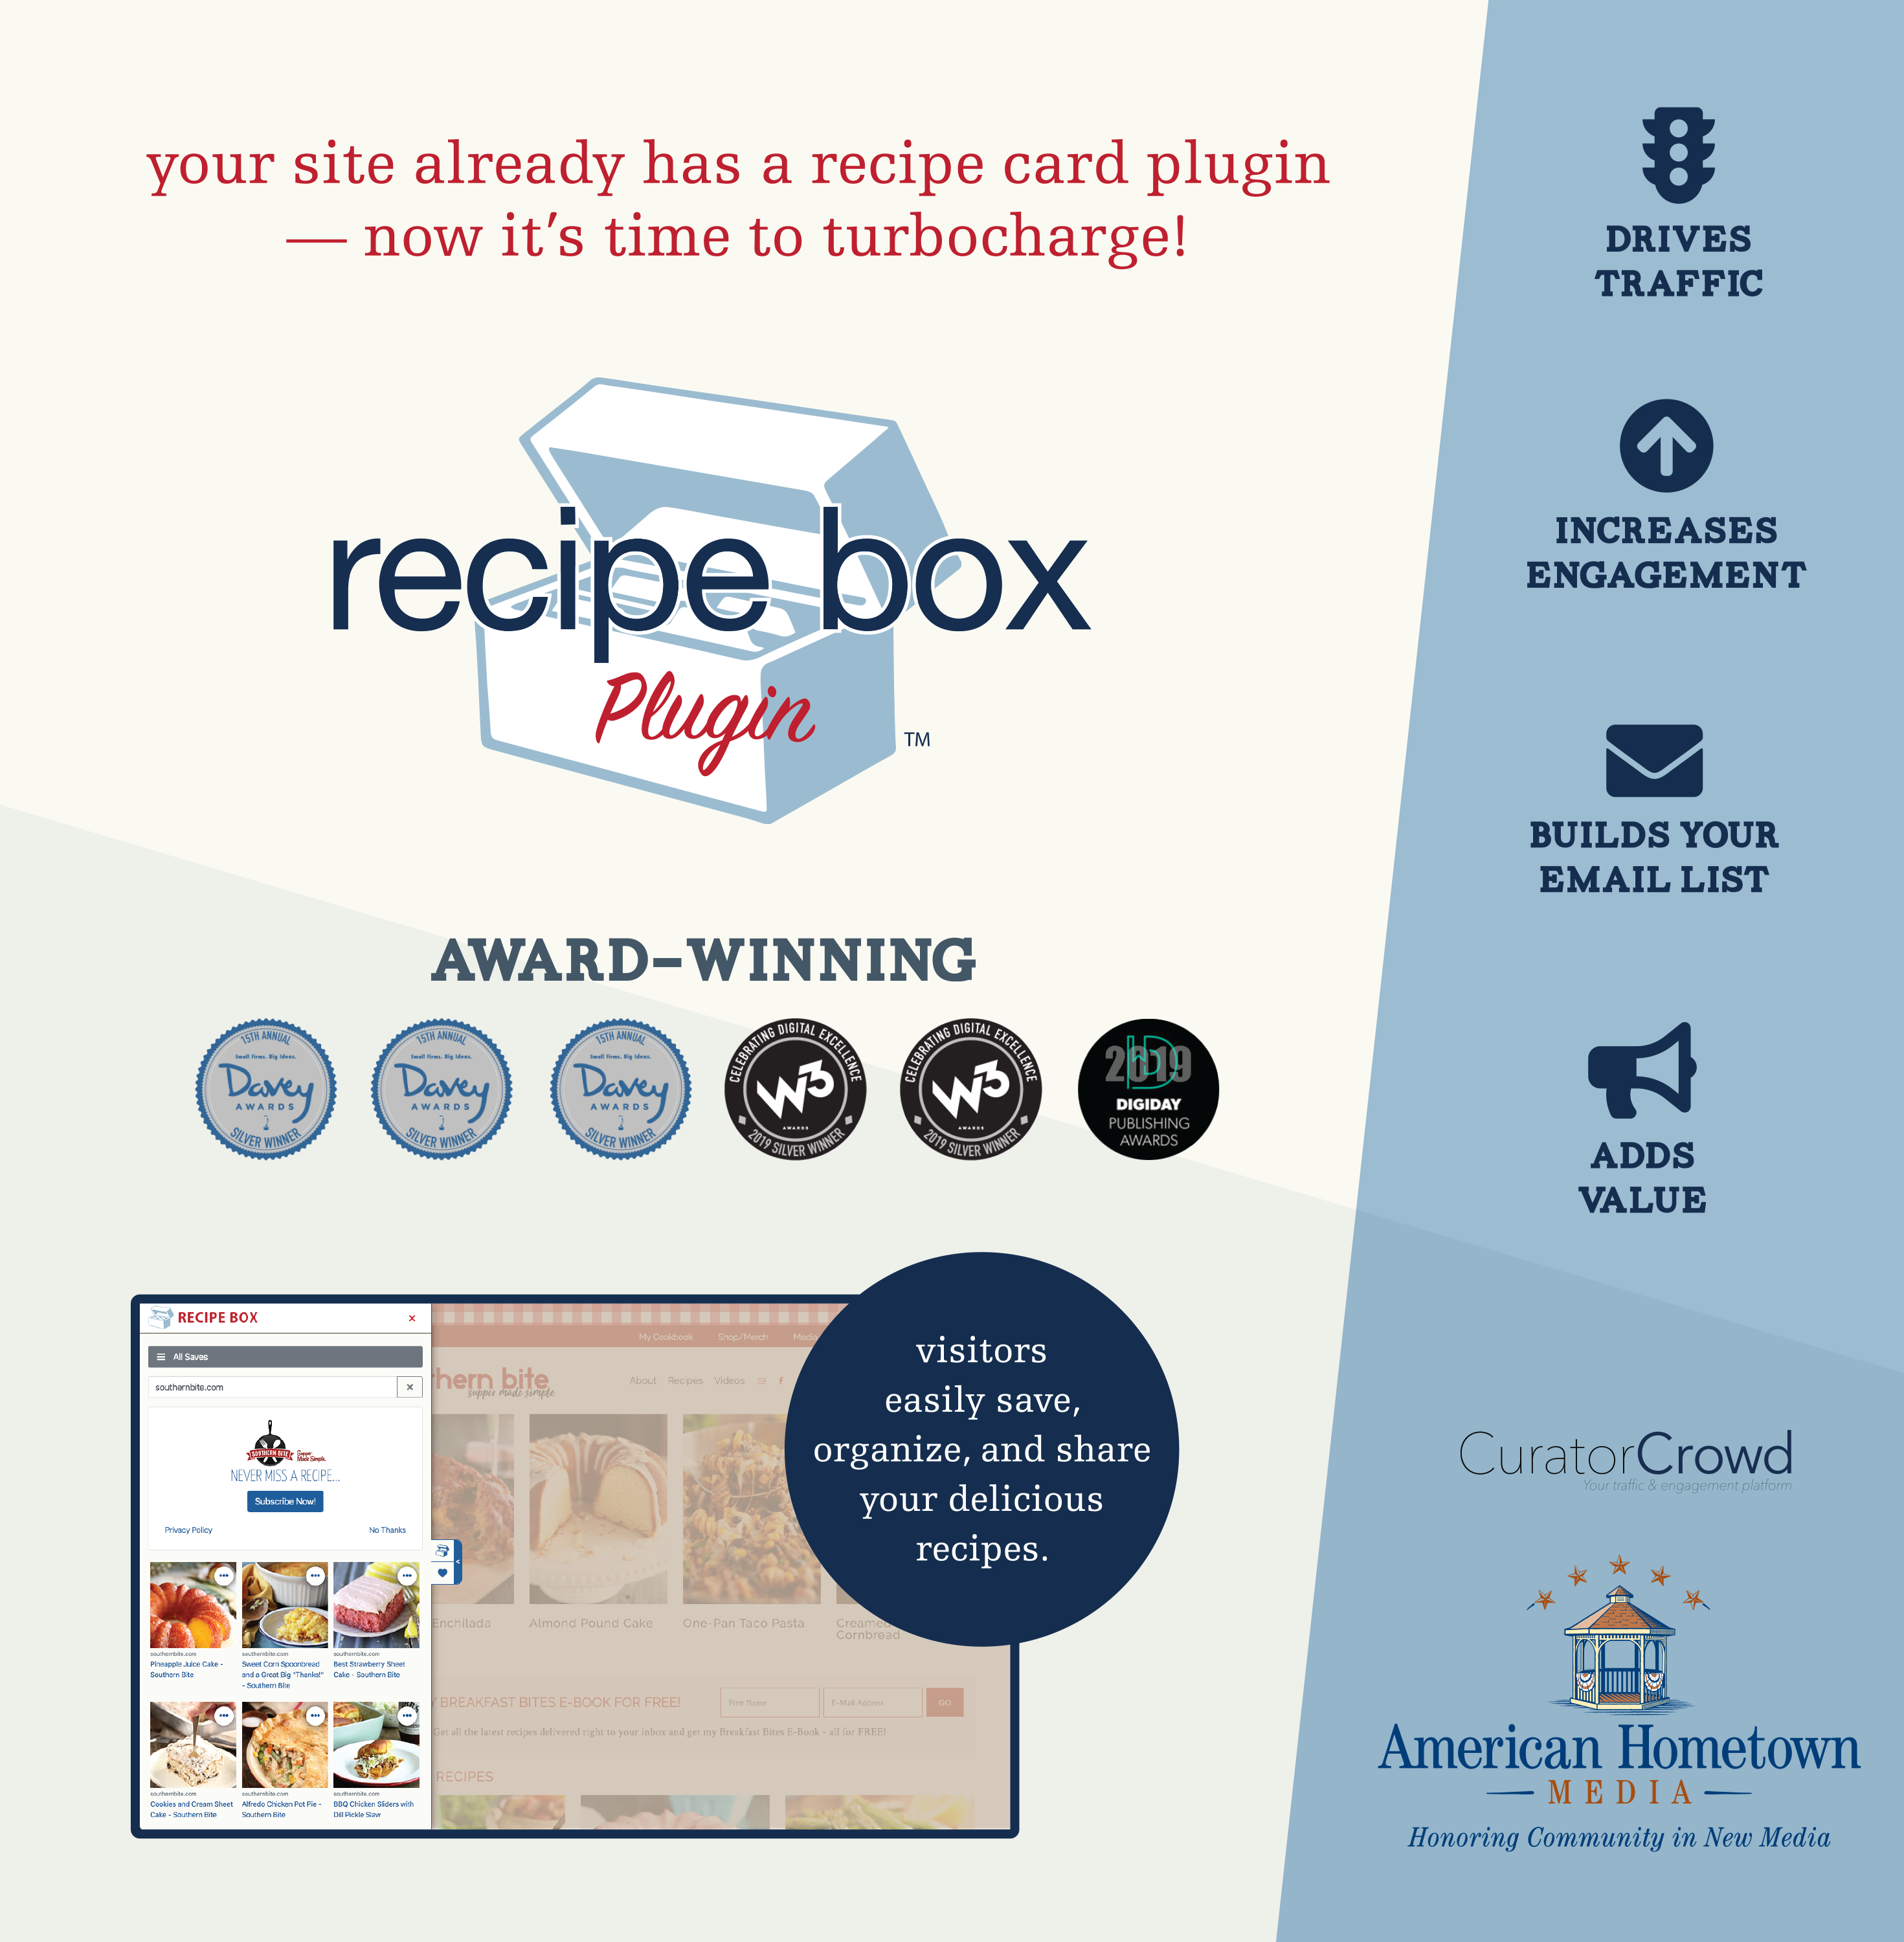 The Recipe Box Plugin™ slides in/out without leaving your site.